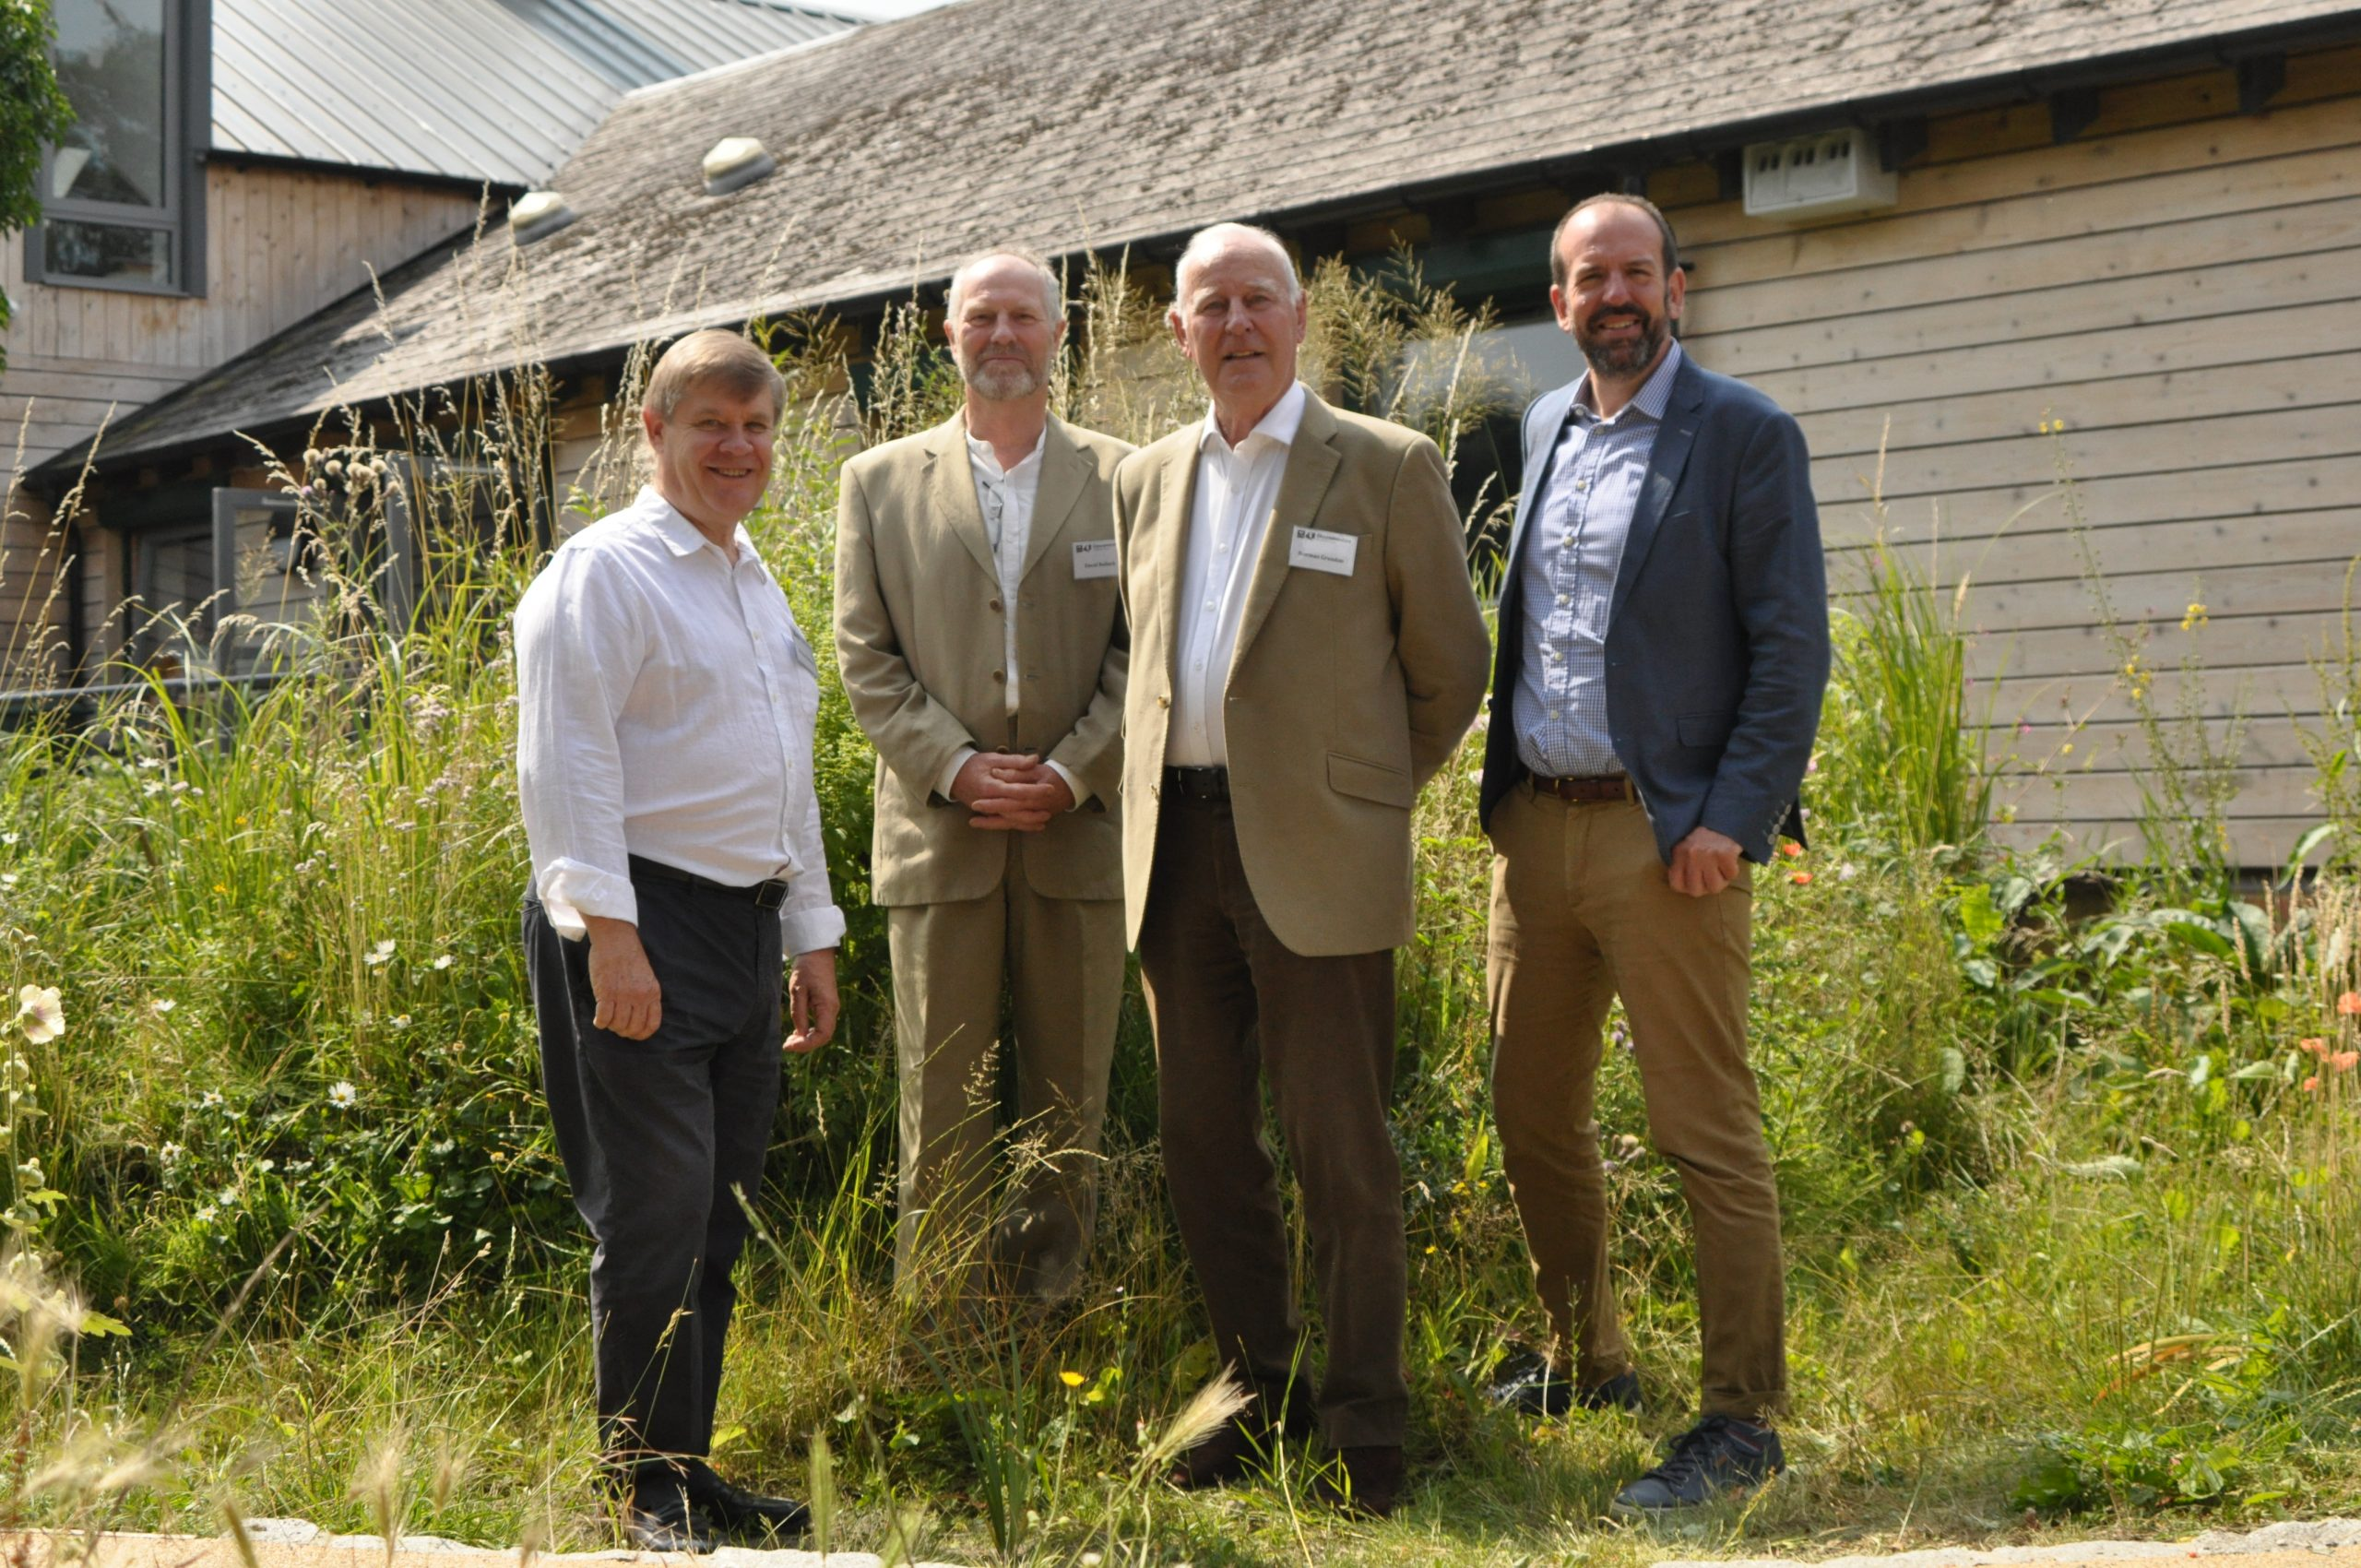 Pictured from left Richard Skehens, Grundon's former CEO; David Bullock, Chair of Trustees at Gloucestershire Wildlife Trust; Norman Grundon, Chairman of Grundon Waste Management; and Roger Mortlock, CEO of Gloucestershire Wildlife Trust.